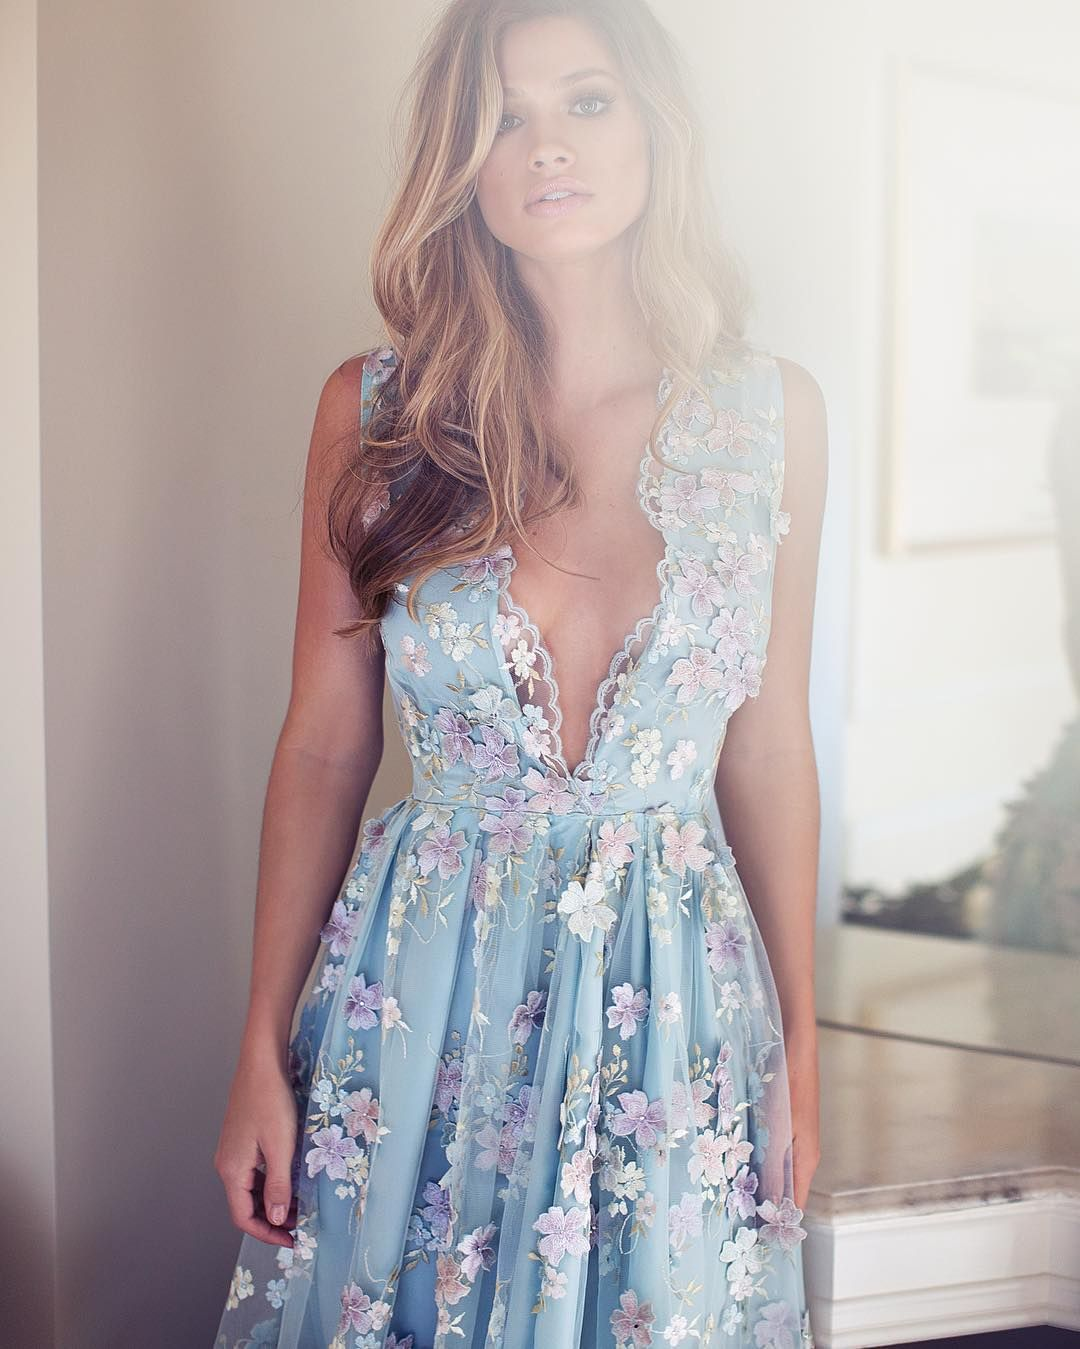 Monday Blues in the prettiest of dresses! #Lurelly #Fleurgown   Instagram: @Lurelly